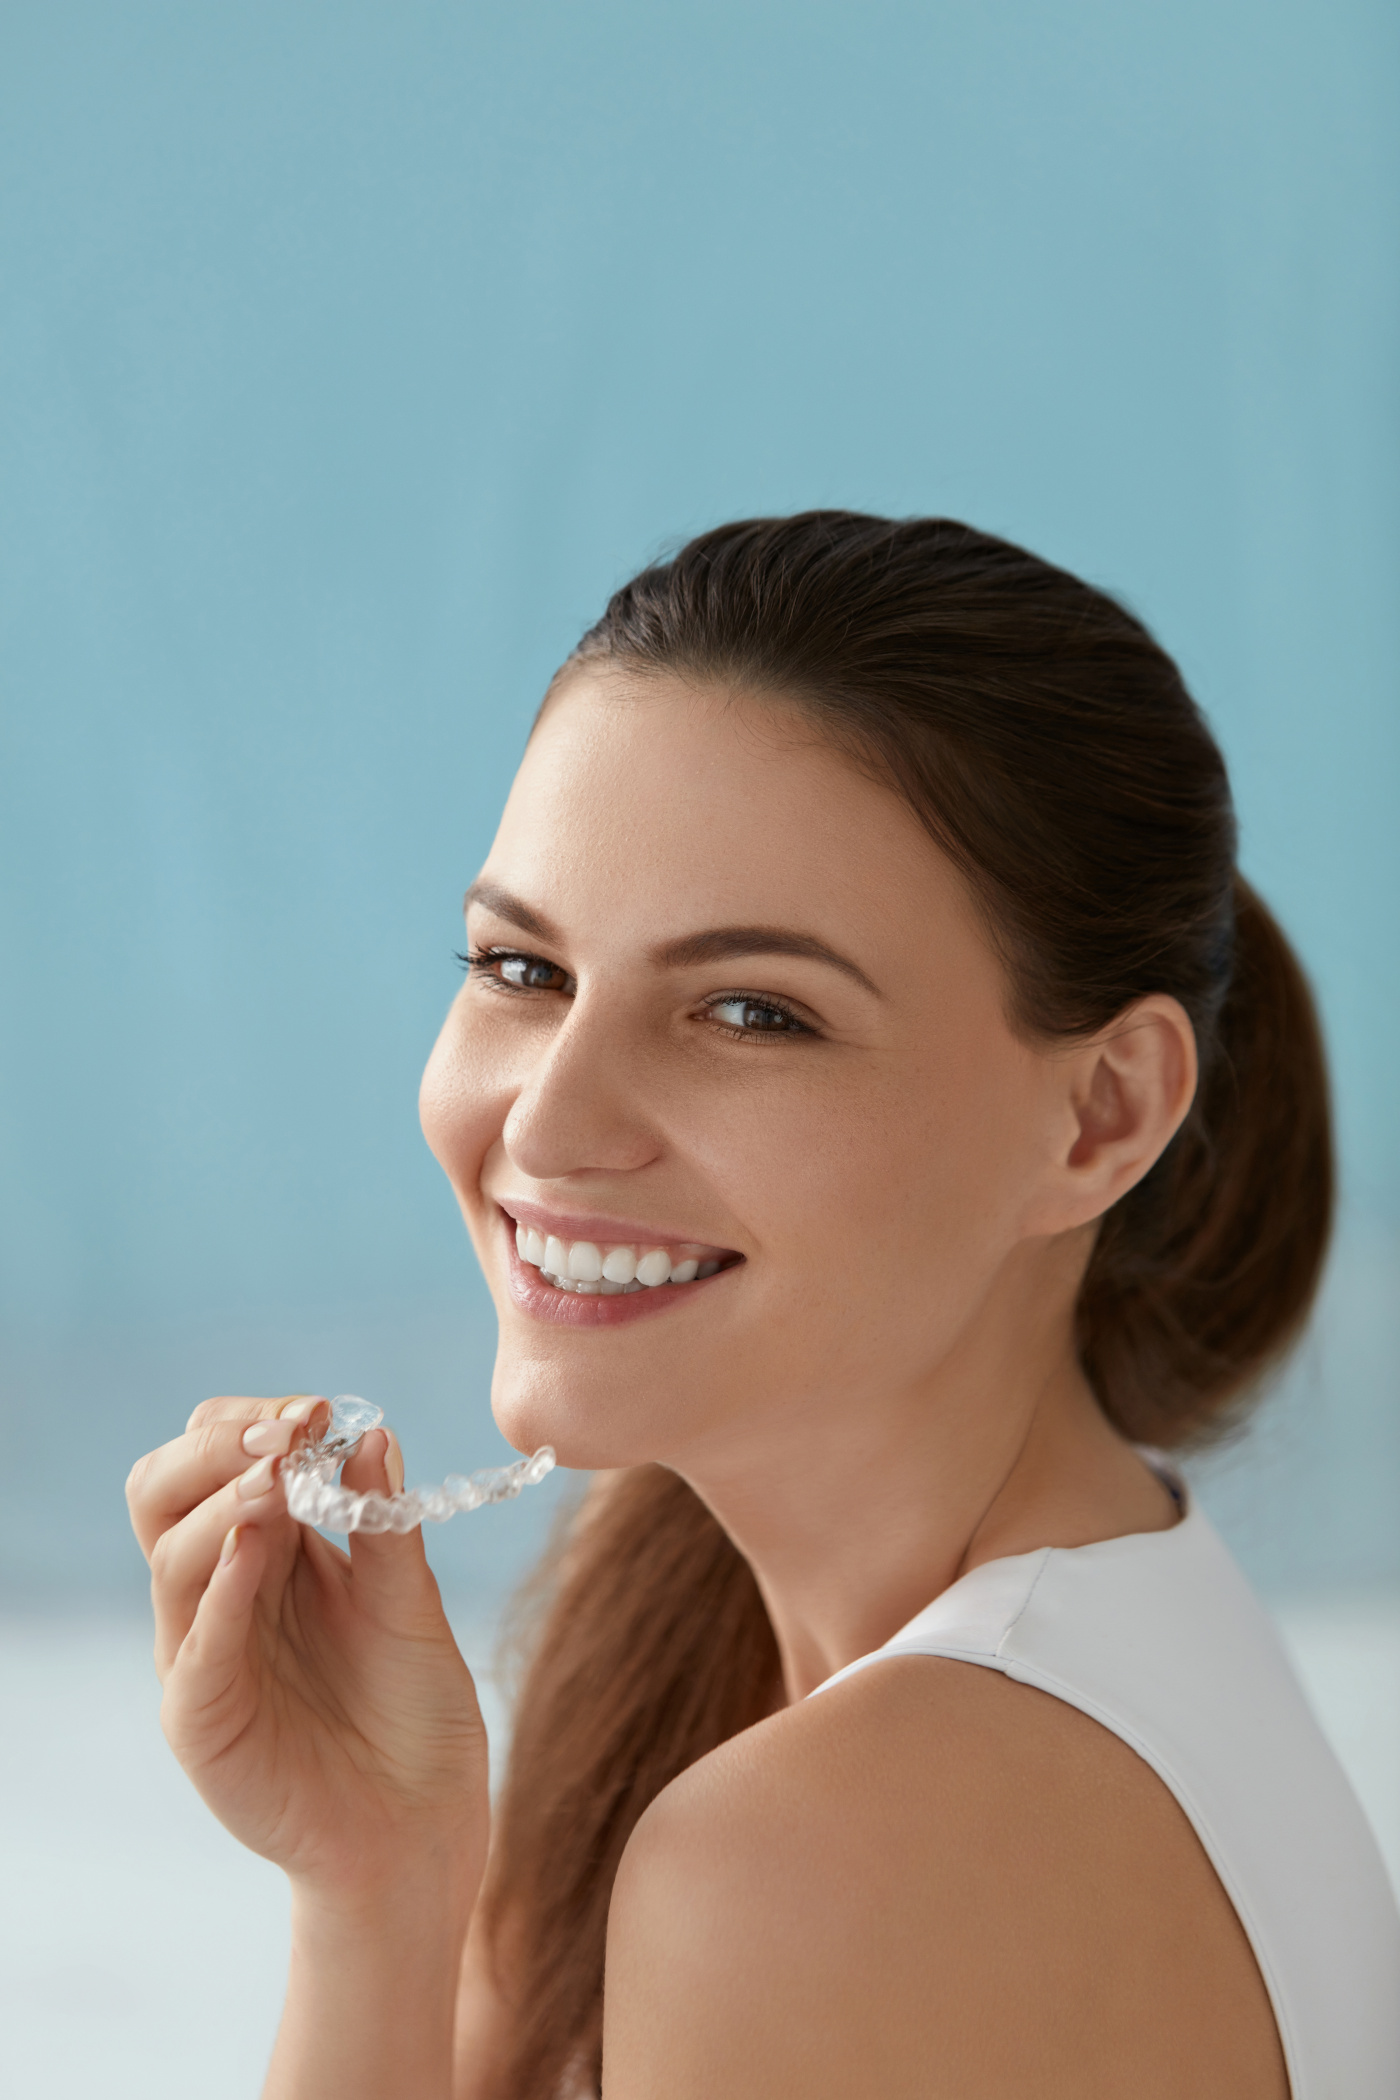 young woman smiling with aligner